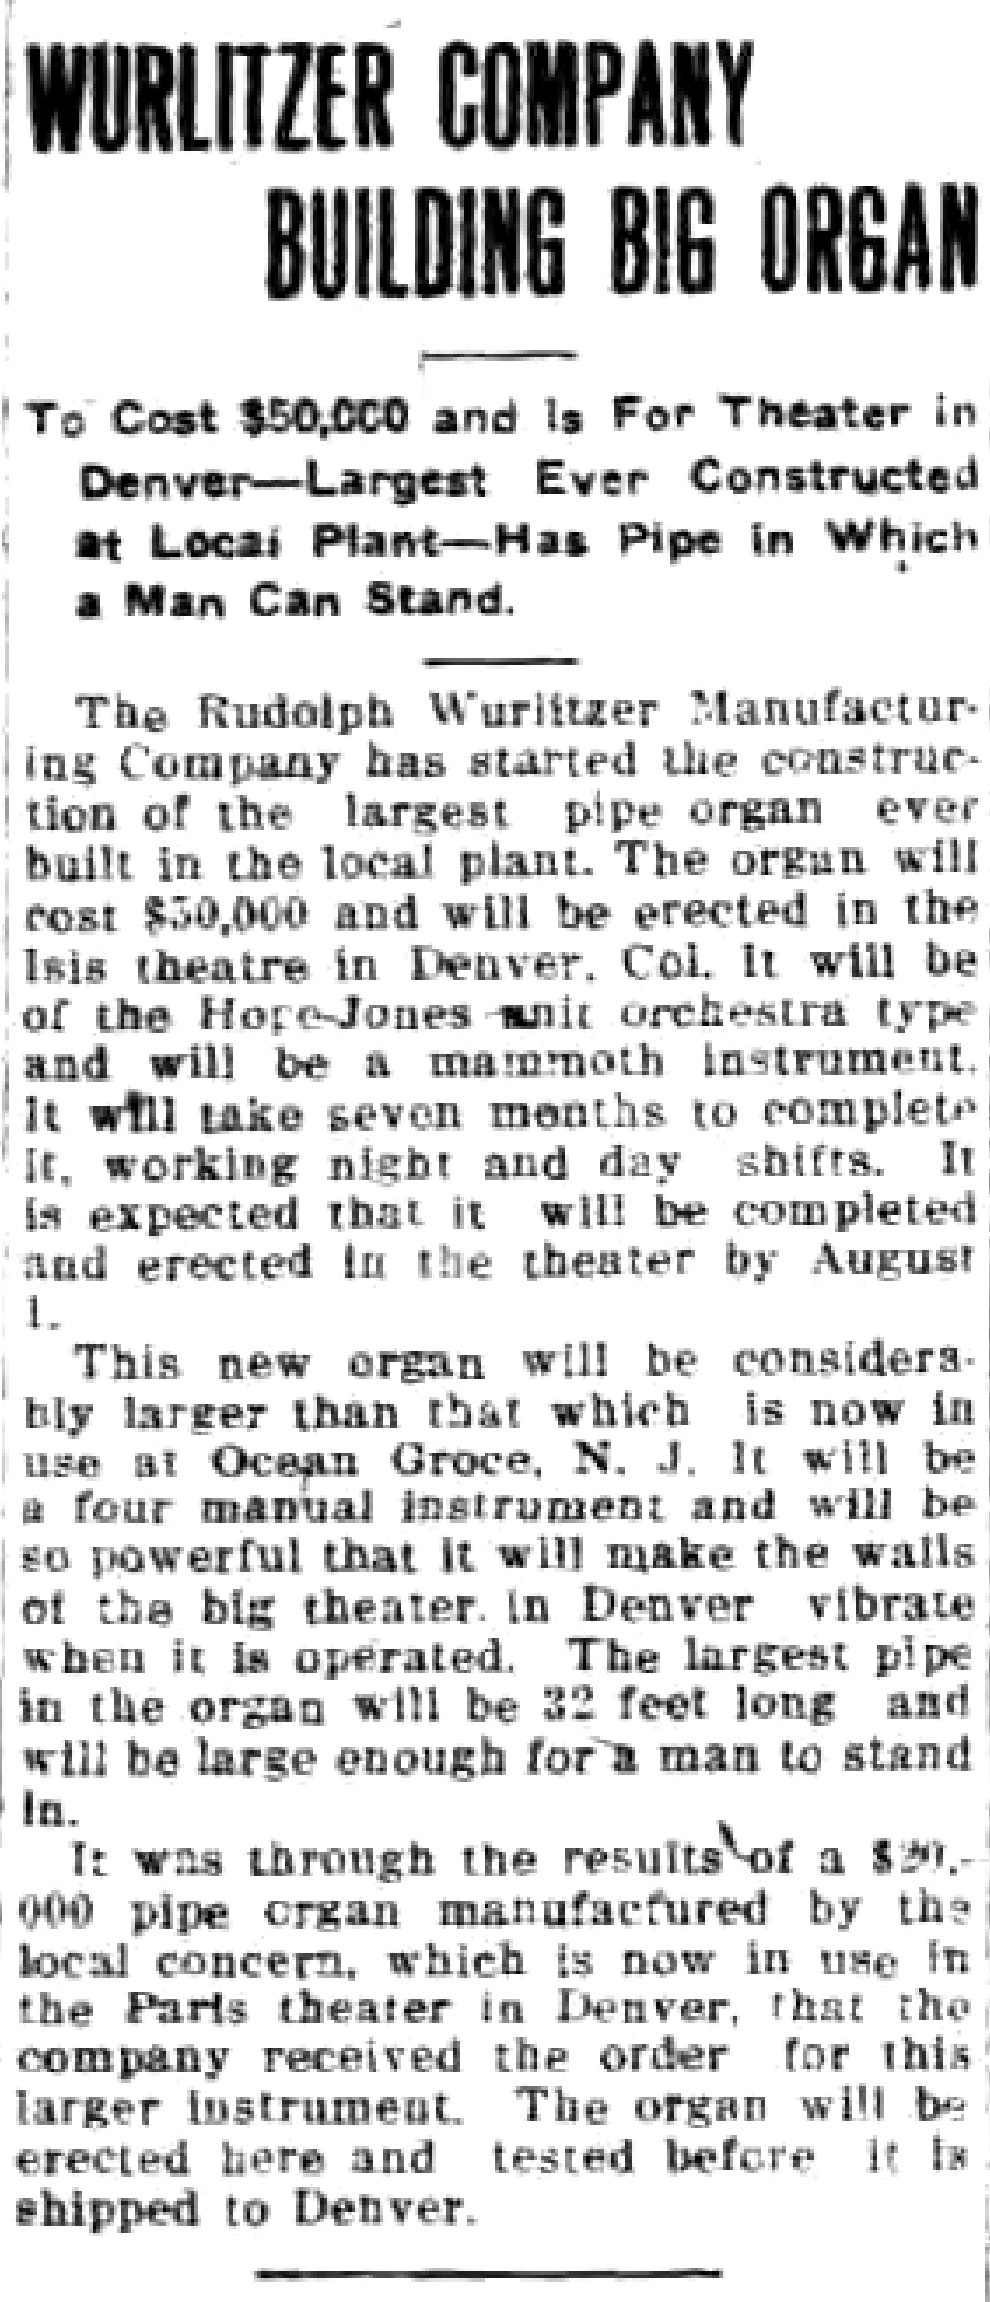 Wurlitzer Company Building Big Organ, article (Tonawanda News, 1915-04-08).jpg